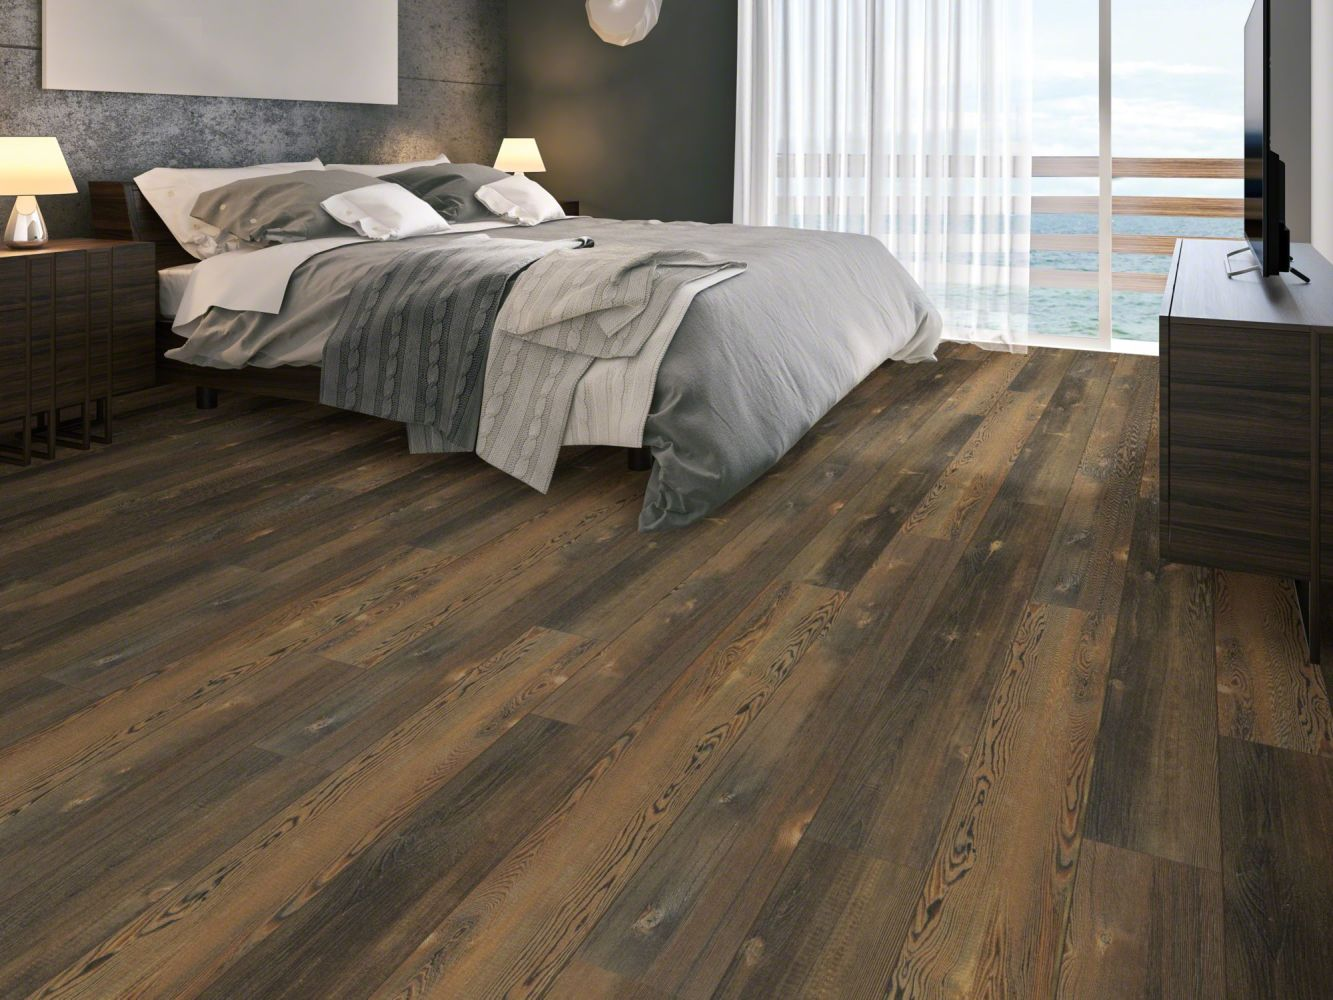 Shaw Floors Vinyl Residential Blue Ridge Pine 720c HD Plus Forest Pine 00812_0864V